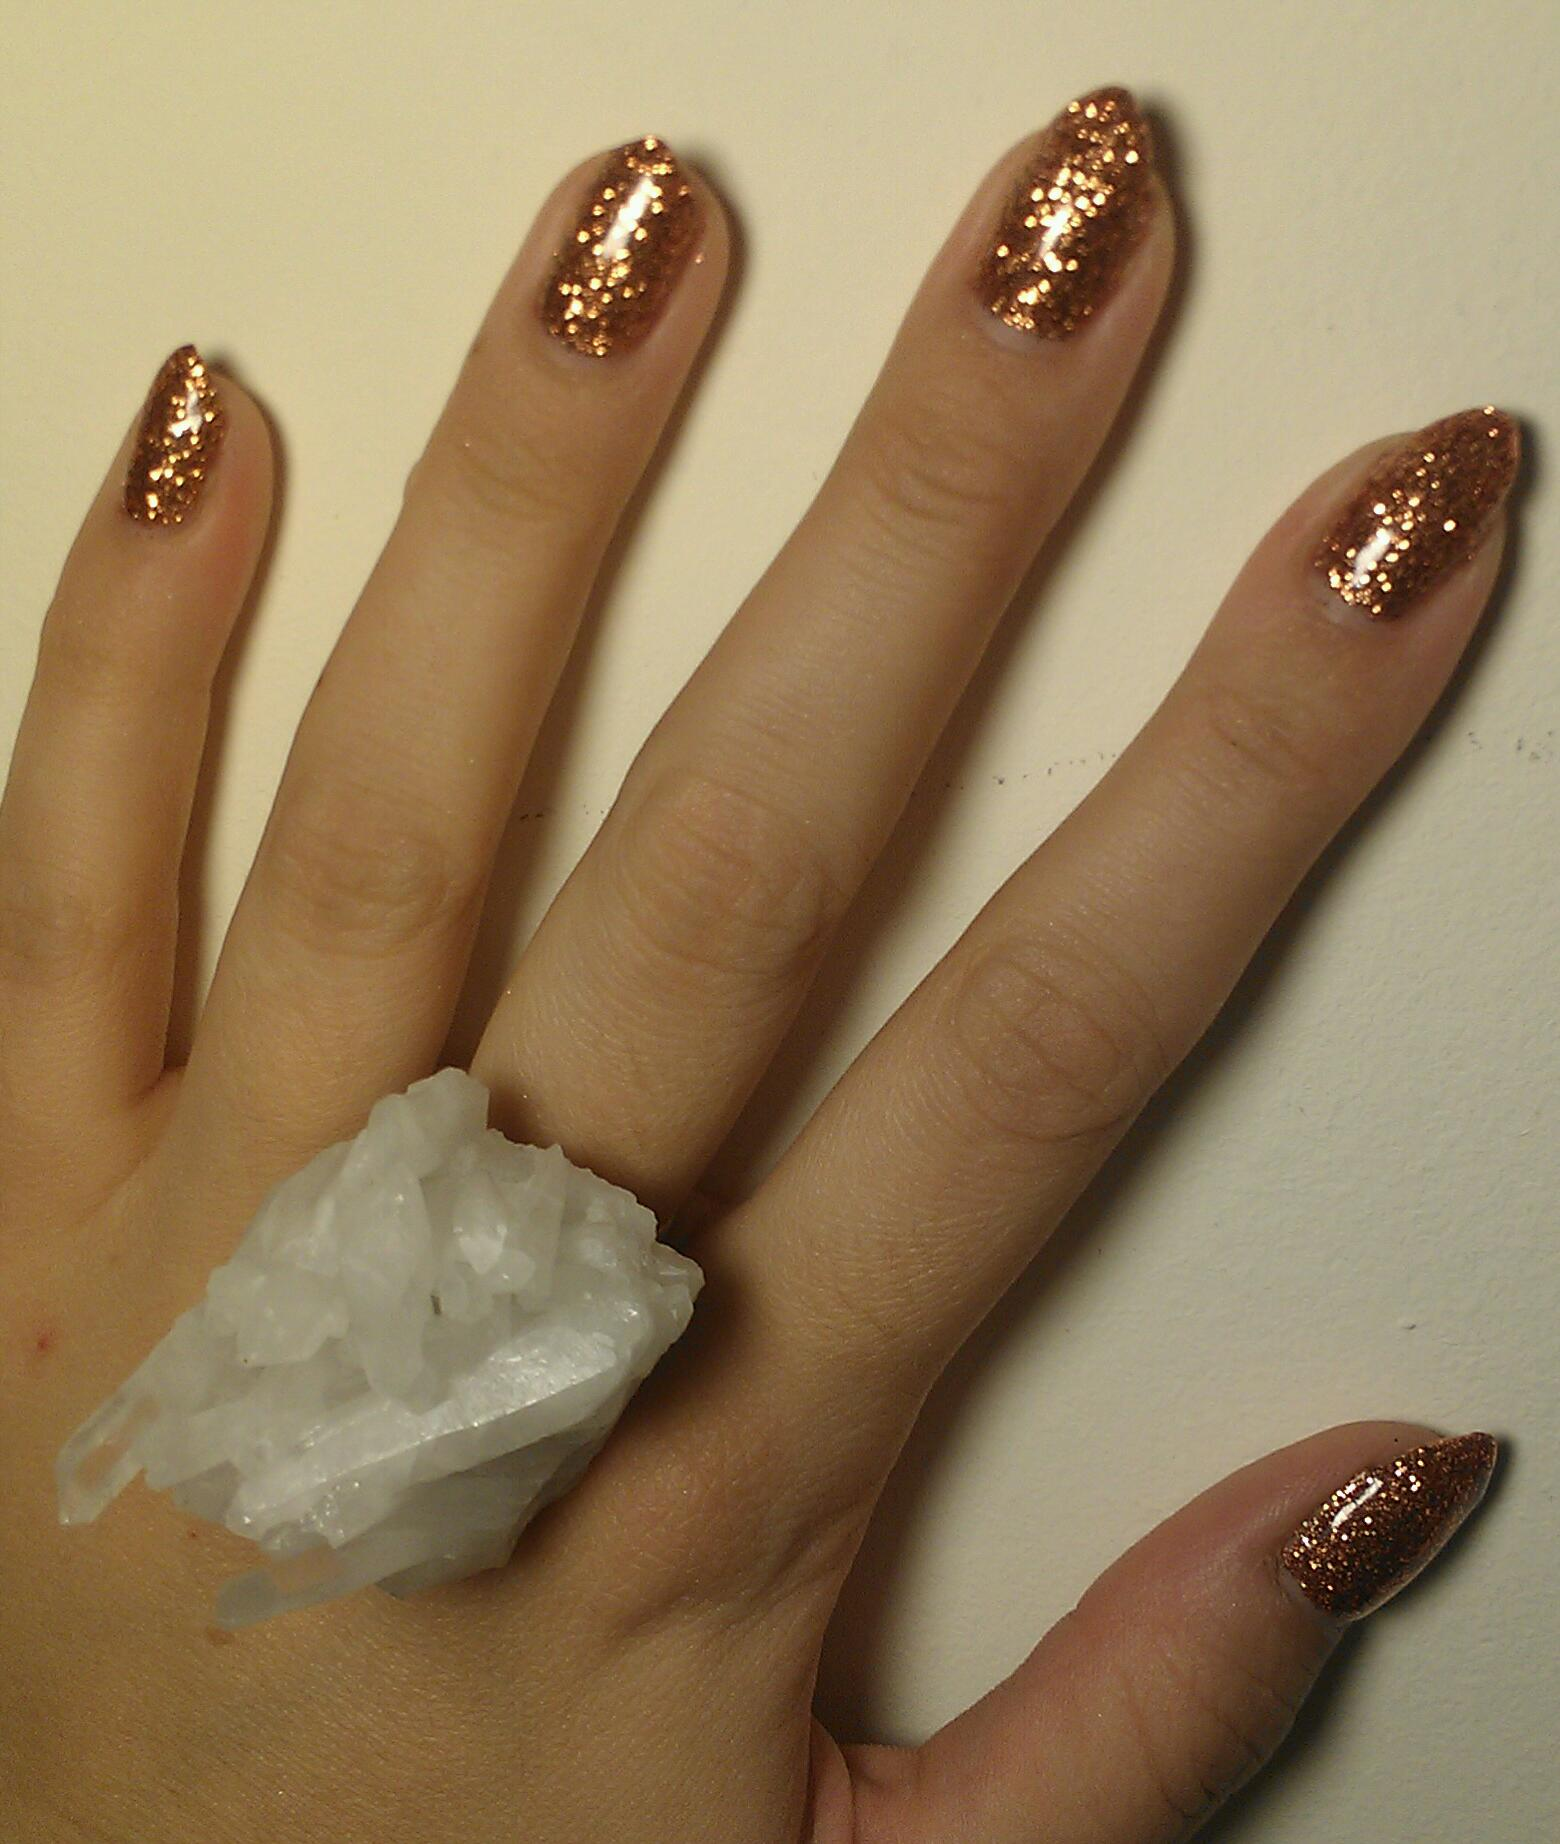 New \'Rockstar\' Nails for LMFF